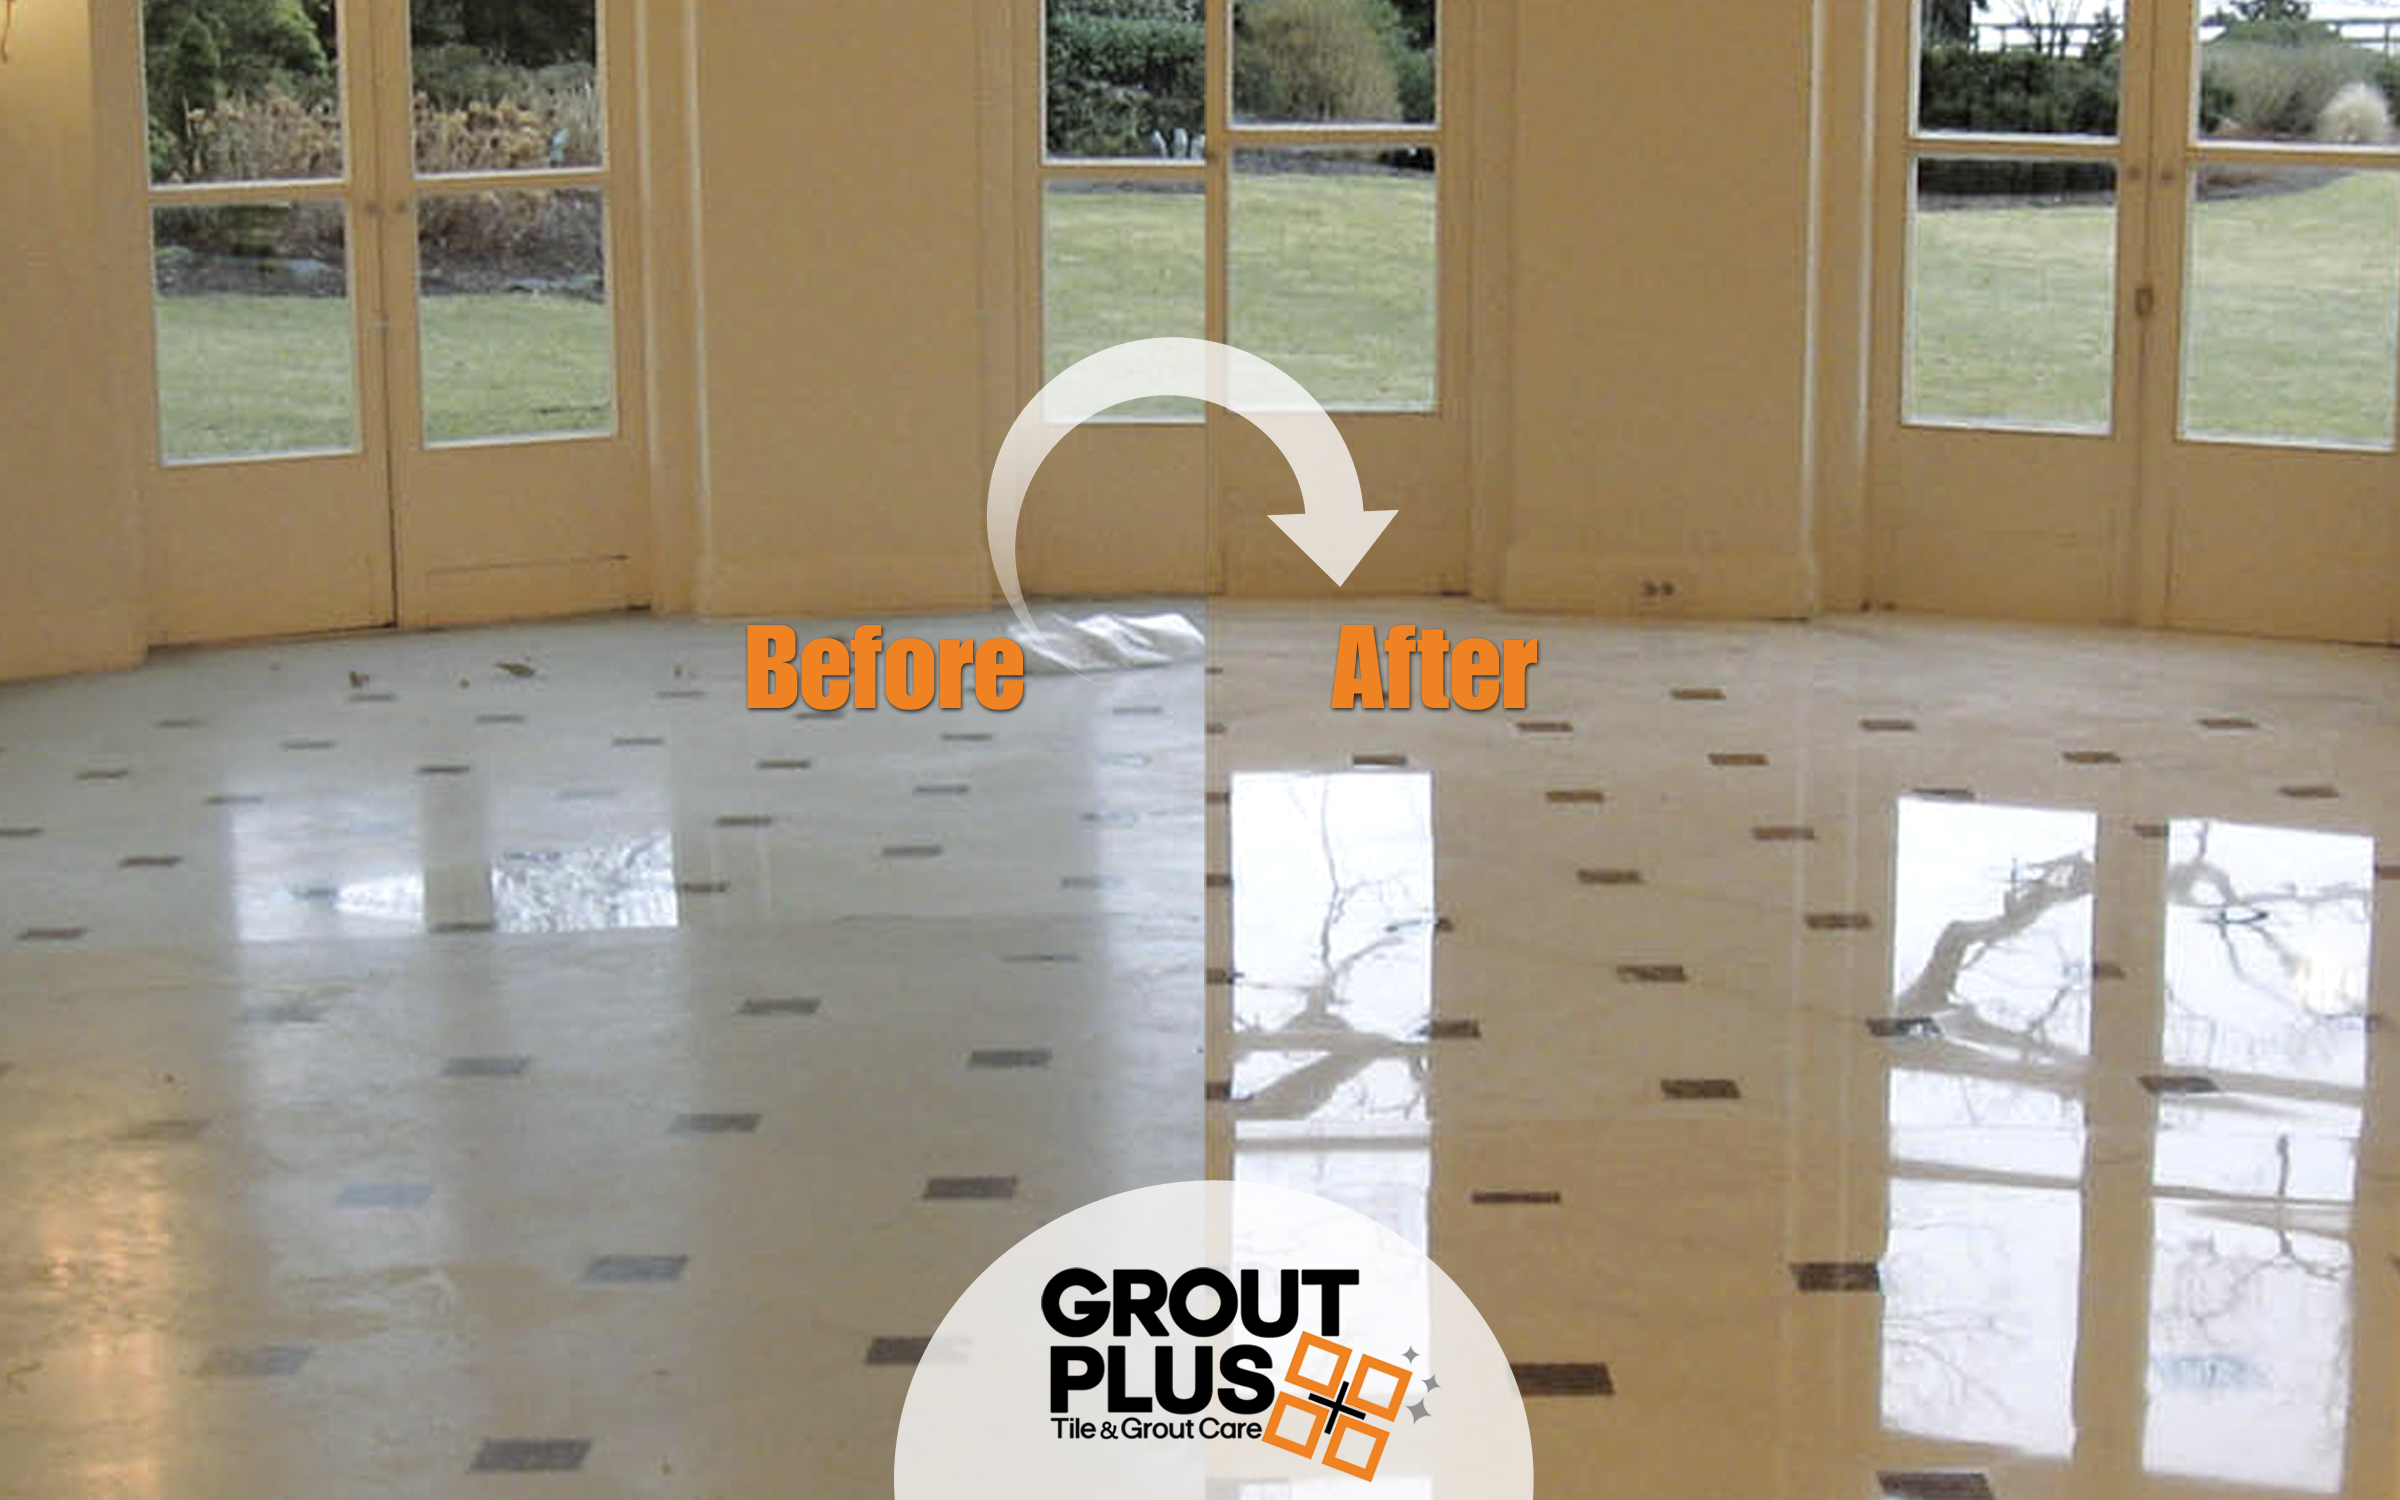 Grout Plus Before After Tile Grout11.jpg